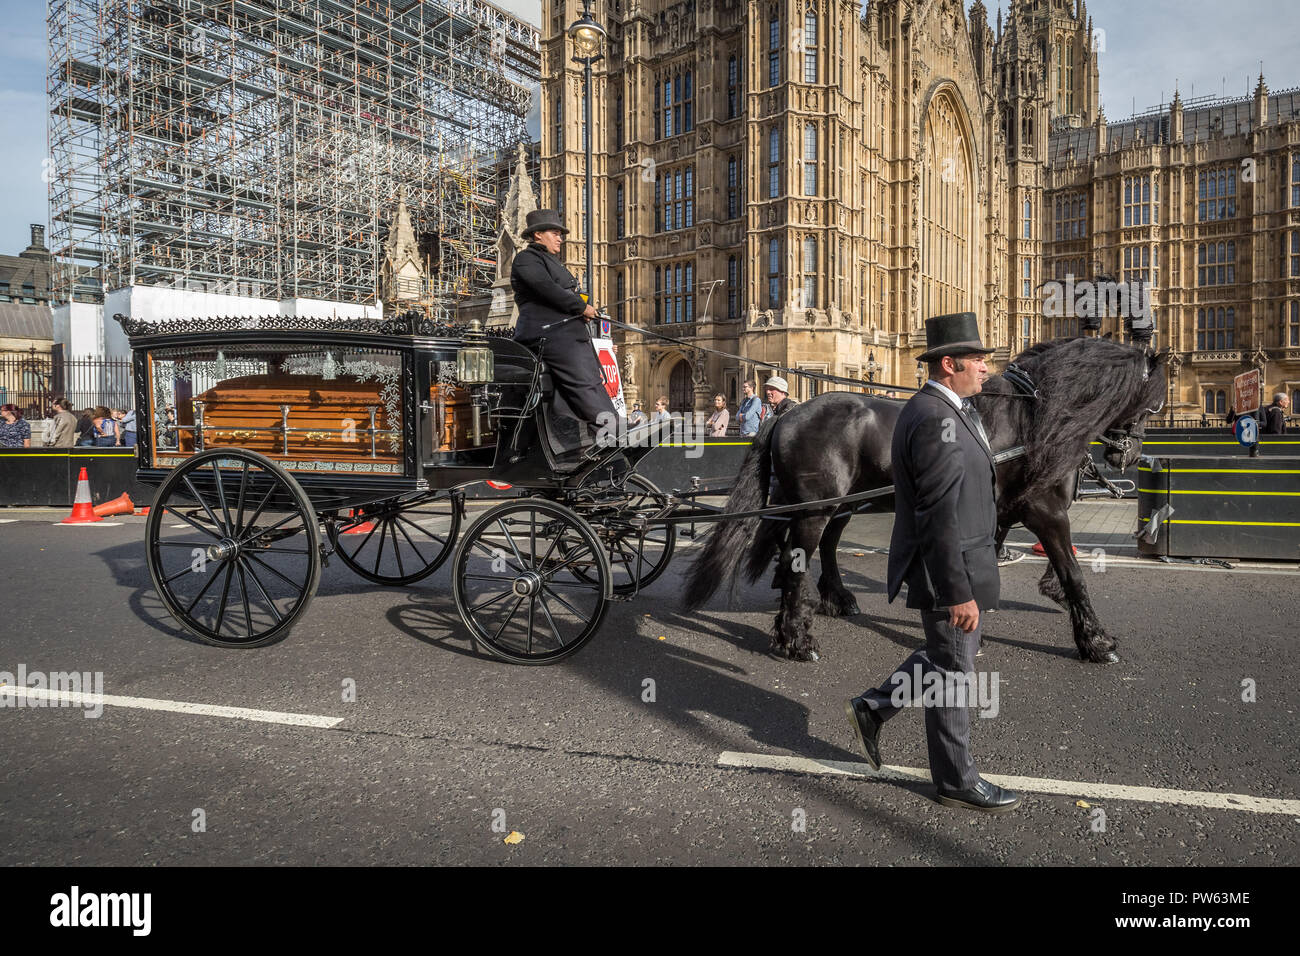 London, UK. 13th October, 2018. The National Funeral for the Unknown Cyclist. Credit: Guy Corbishley/Alamy Live News - Stock Image